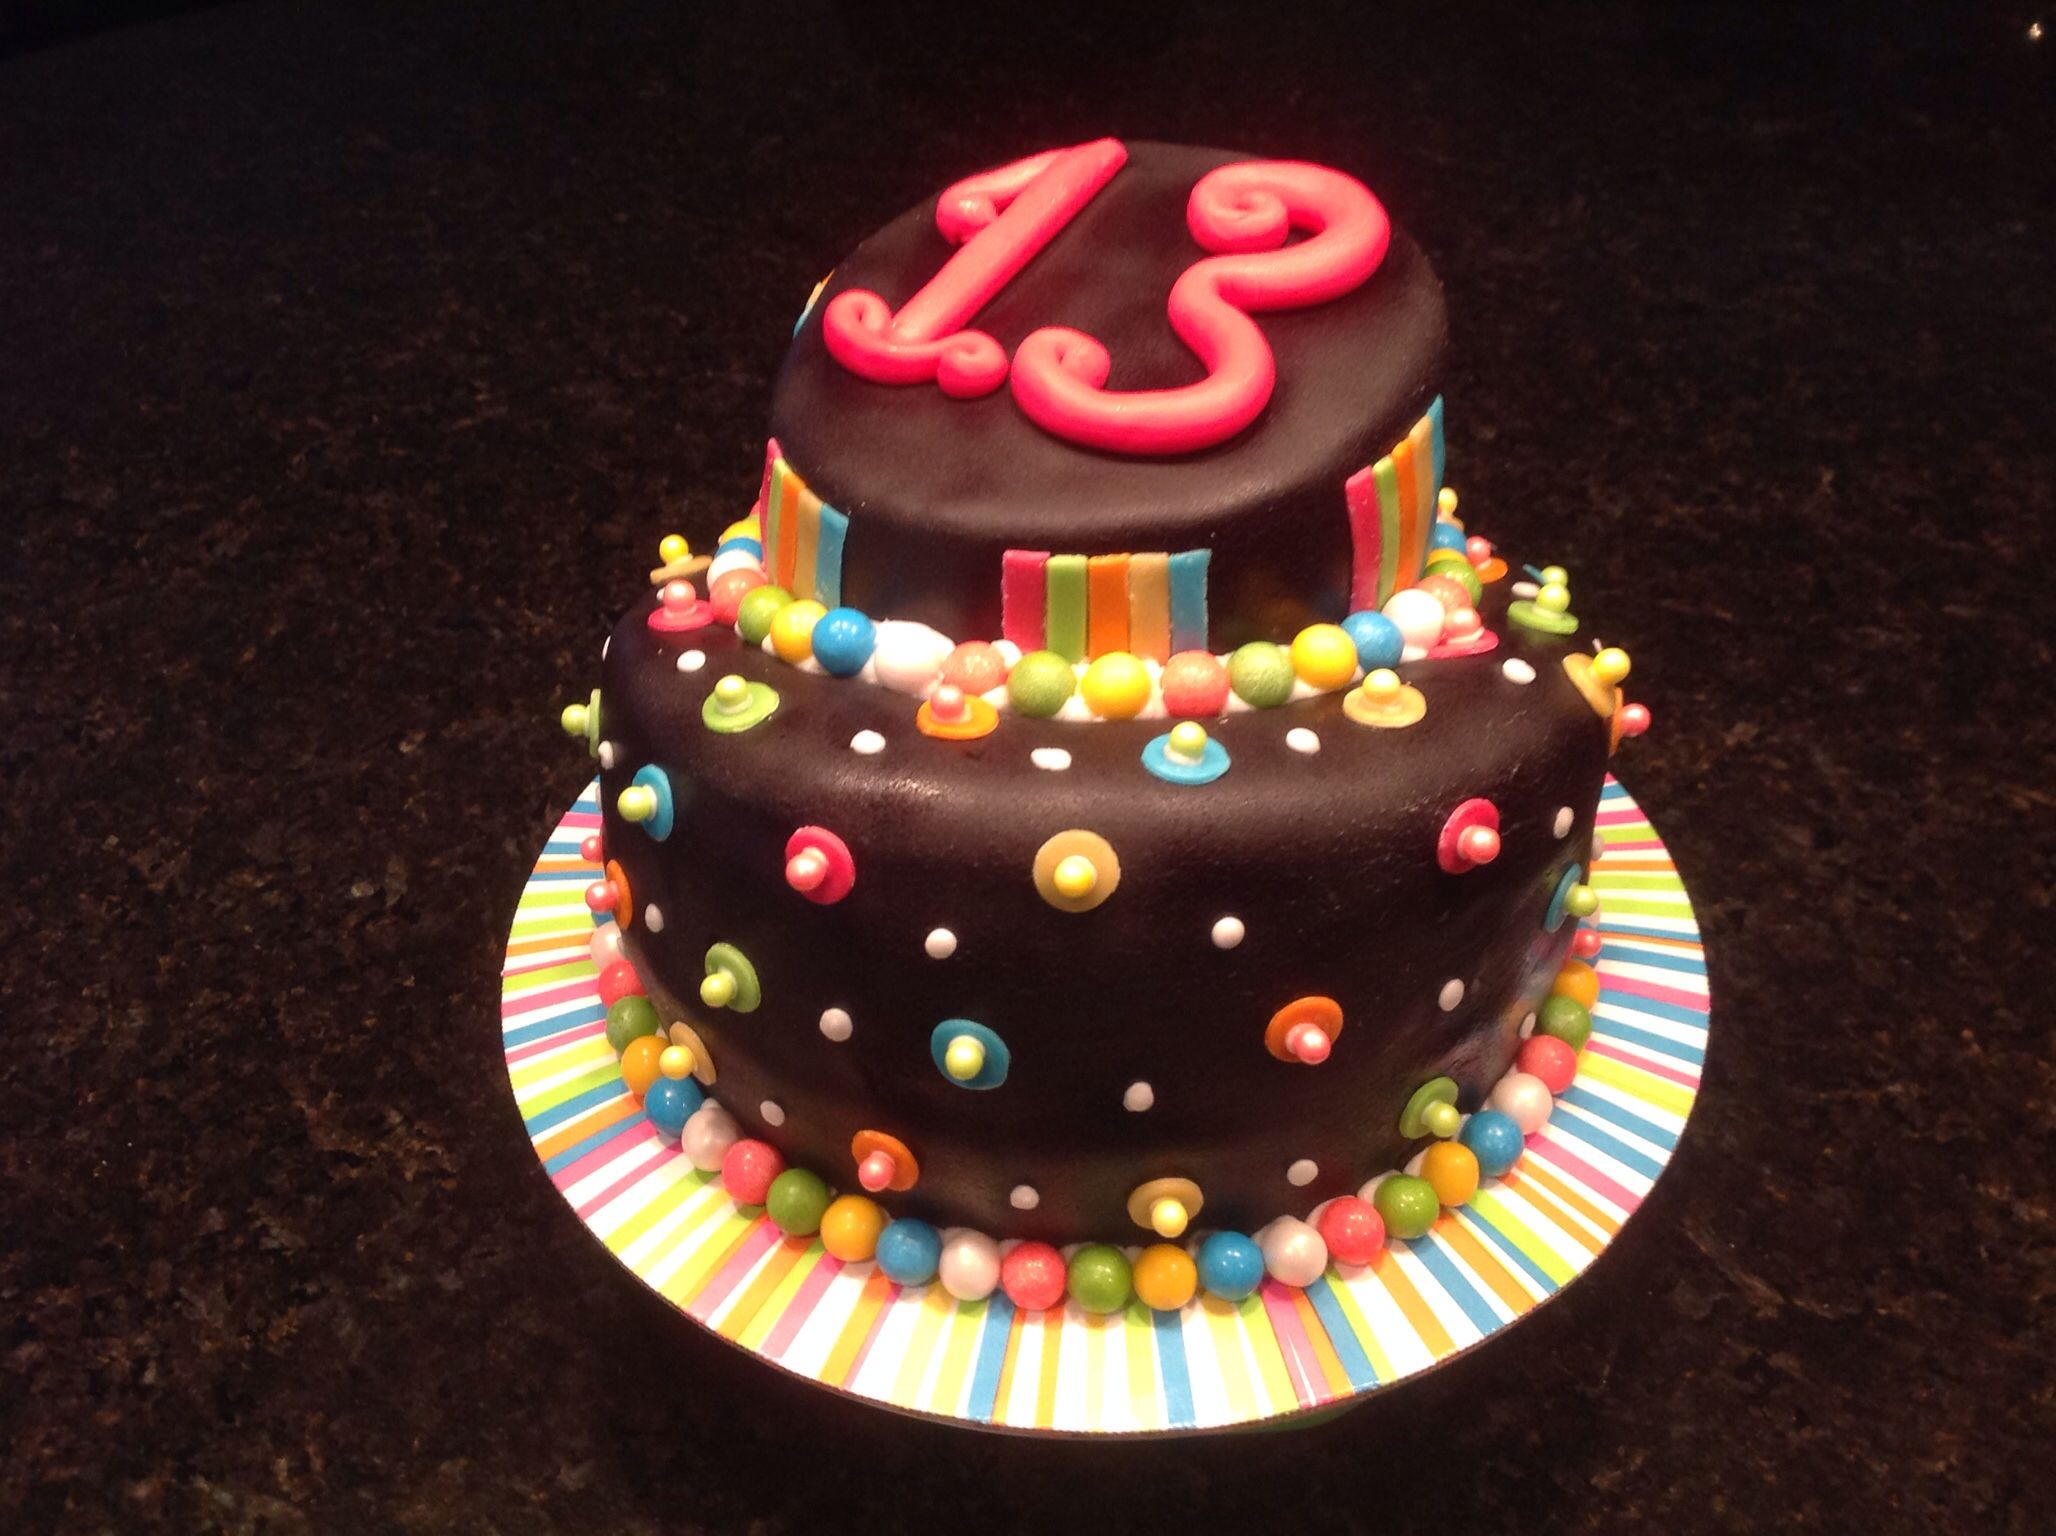 13 Year Old Twins Cake To Match Their Birthday Invitations With